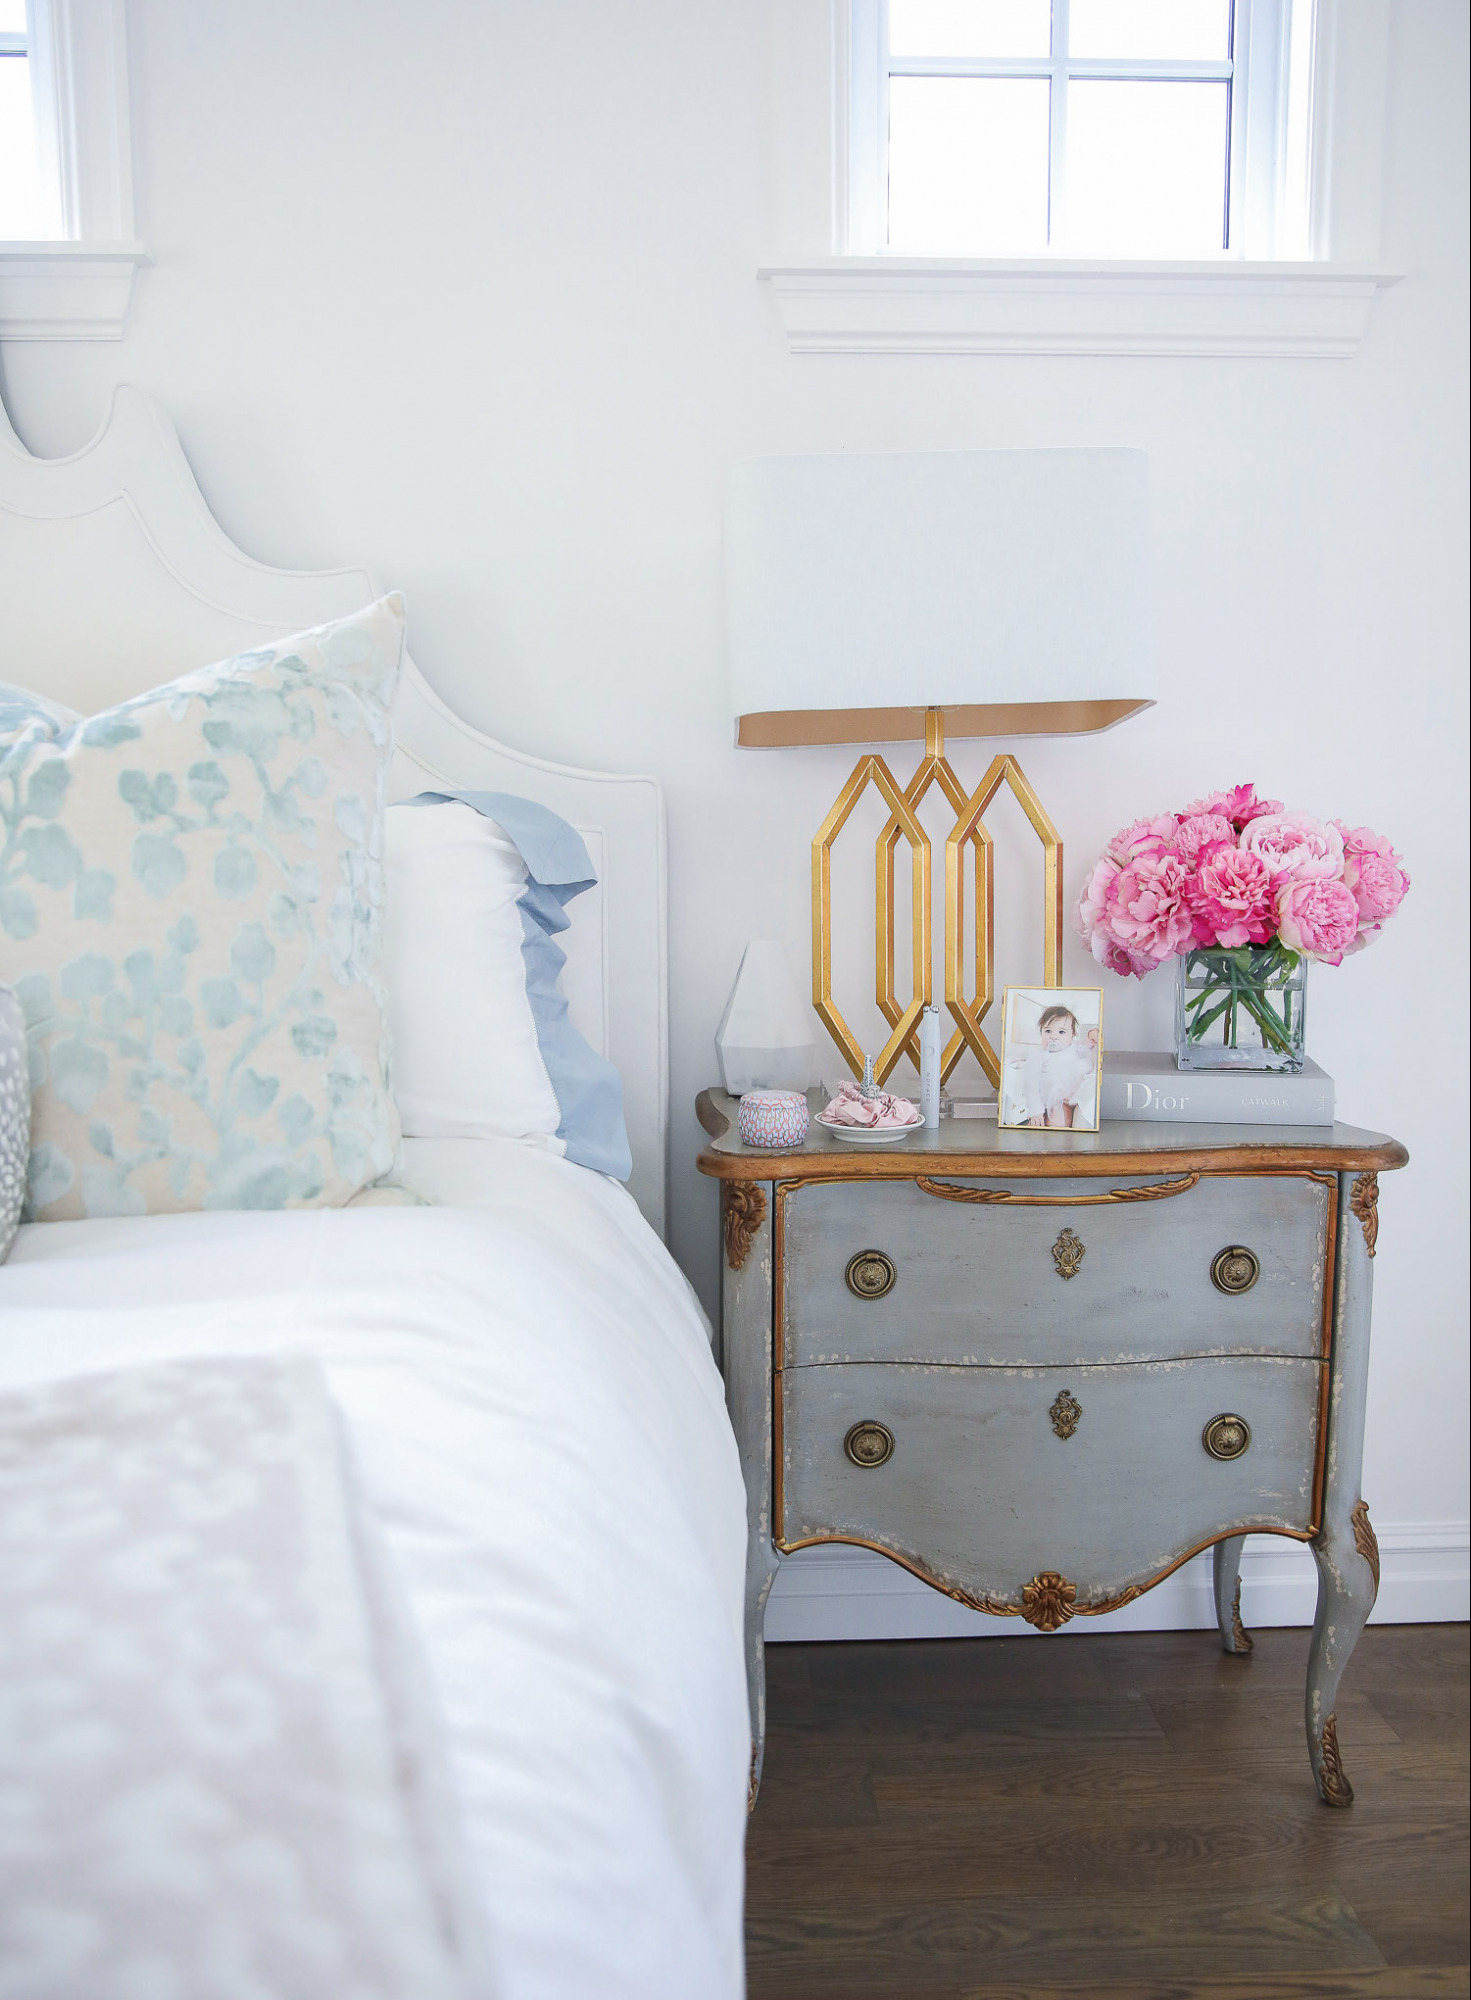 hooker furniture master bedroom, master bedroom Inspo interest, Emily Gemma master bedroom, Anthropologie mirrors, perfume trays, Pinterest home Inspo 2021 |  Nordstrom Anniversary Sale 2021 by popular US life and style blog, The Sweetest Thing: image of a master bedroom with a mirrored night stand containing a gold base lamp, glass vase filled with pink peonies, Voulspa candle, and pink silk scrunchies on a white ceramic ring holder.